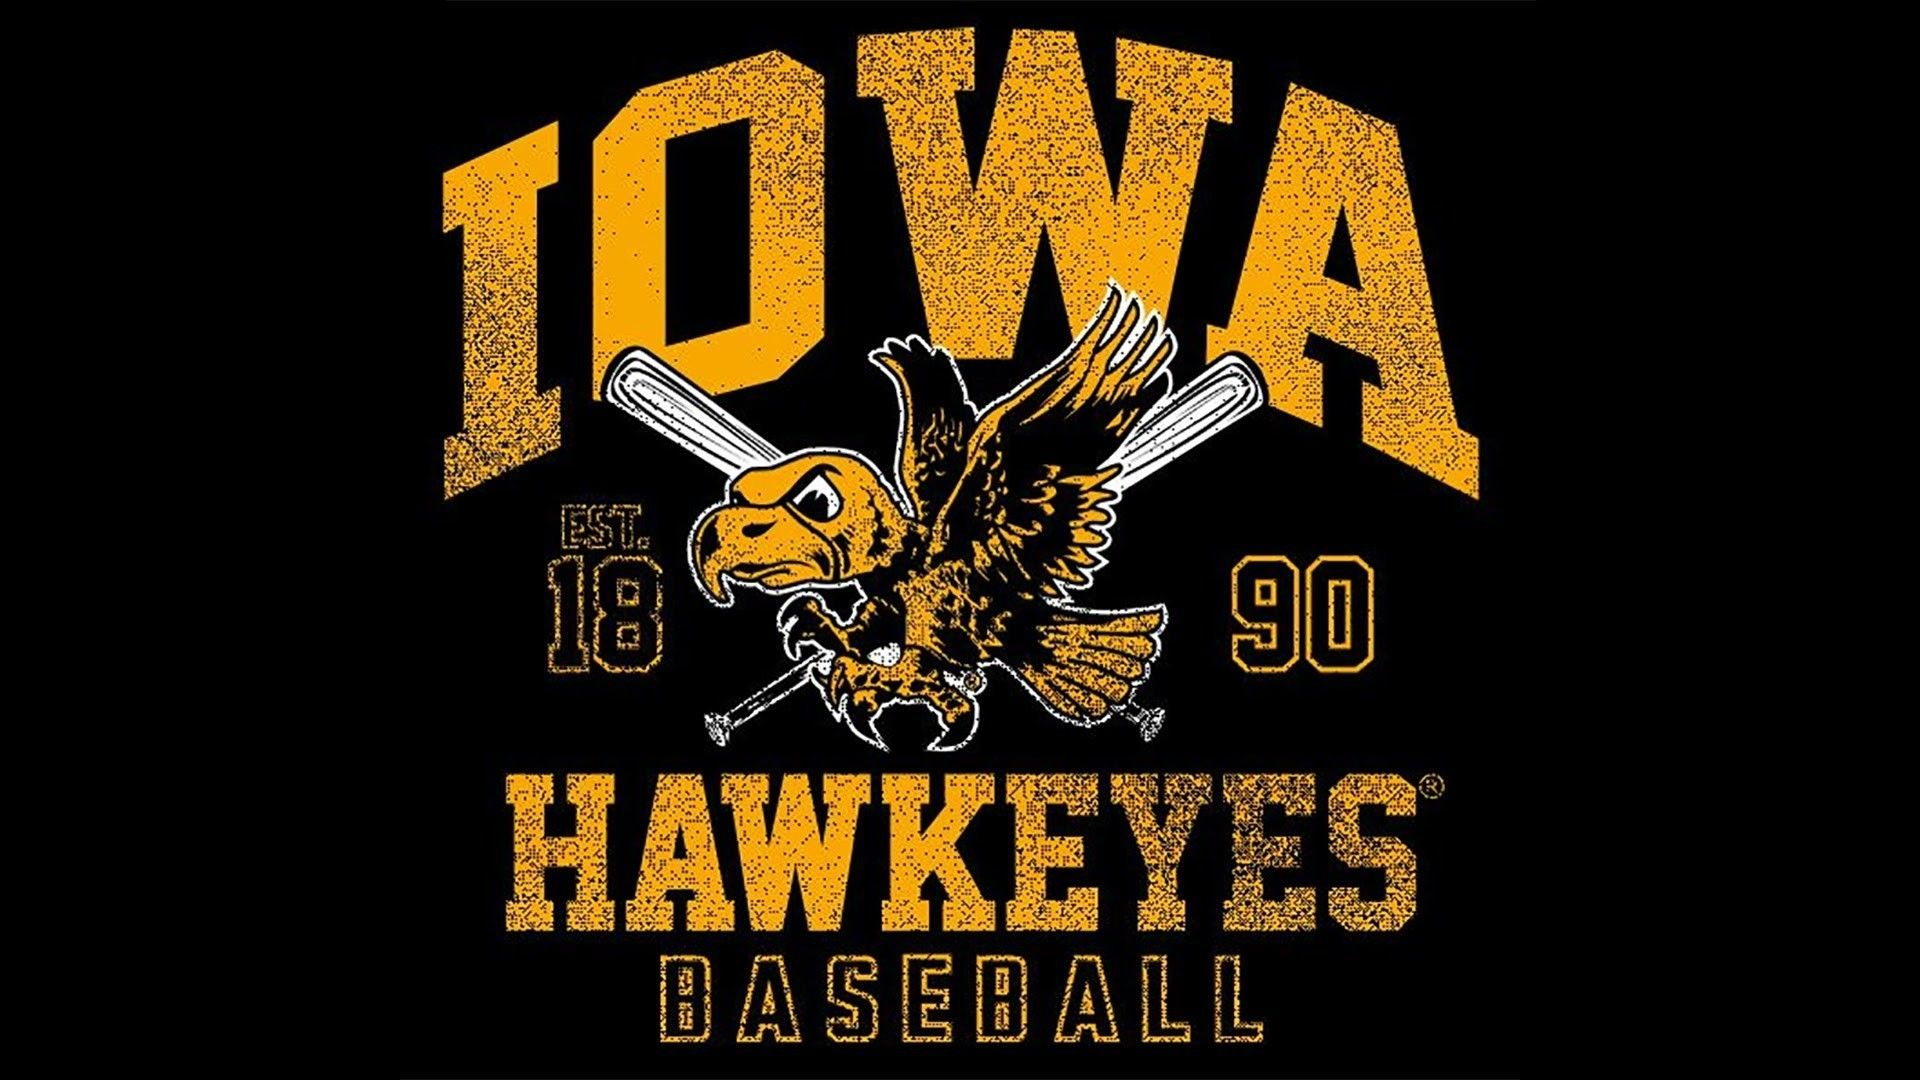 Awesome iowa hawkeyes wallpaper iphone check more at https